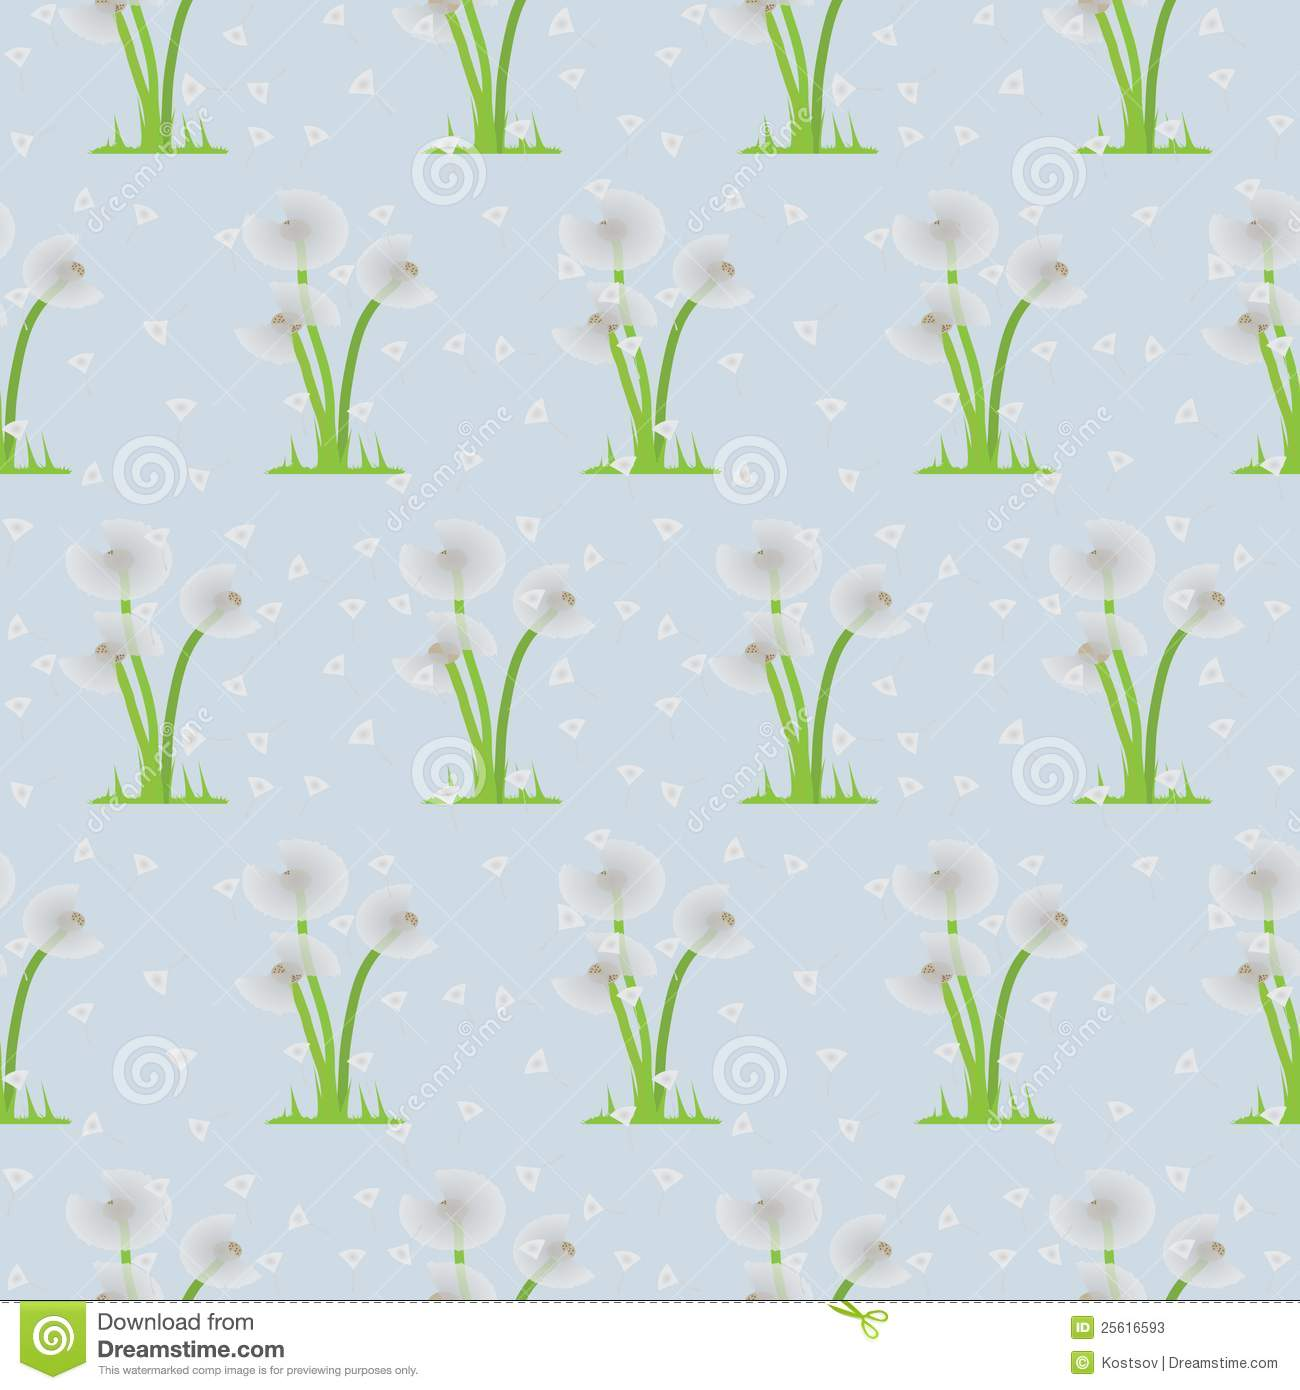 Seamless Illustration Of Dandelions On Background Stock